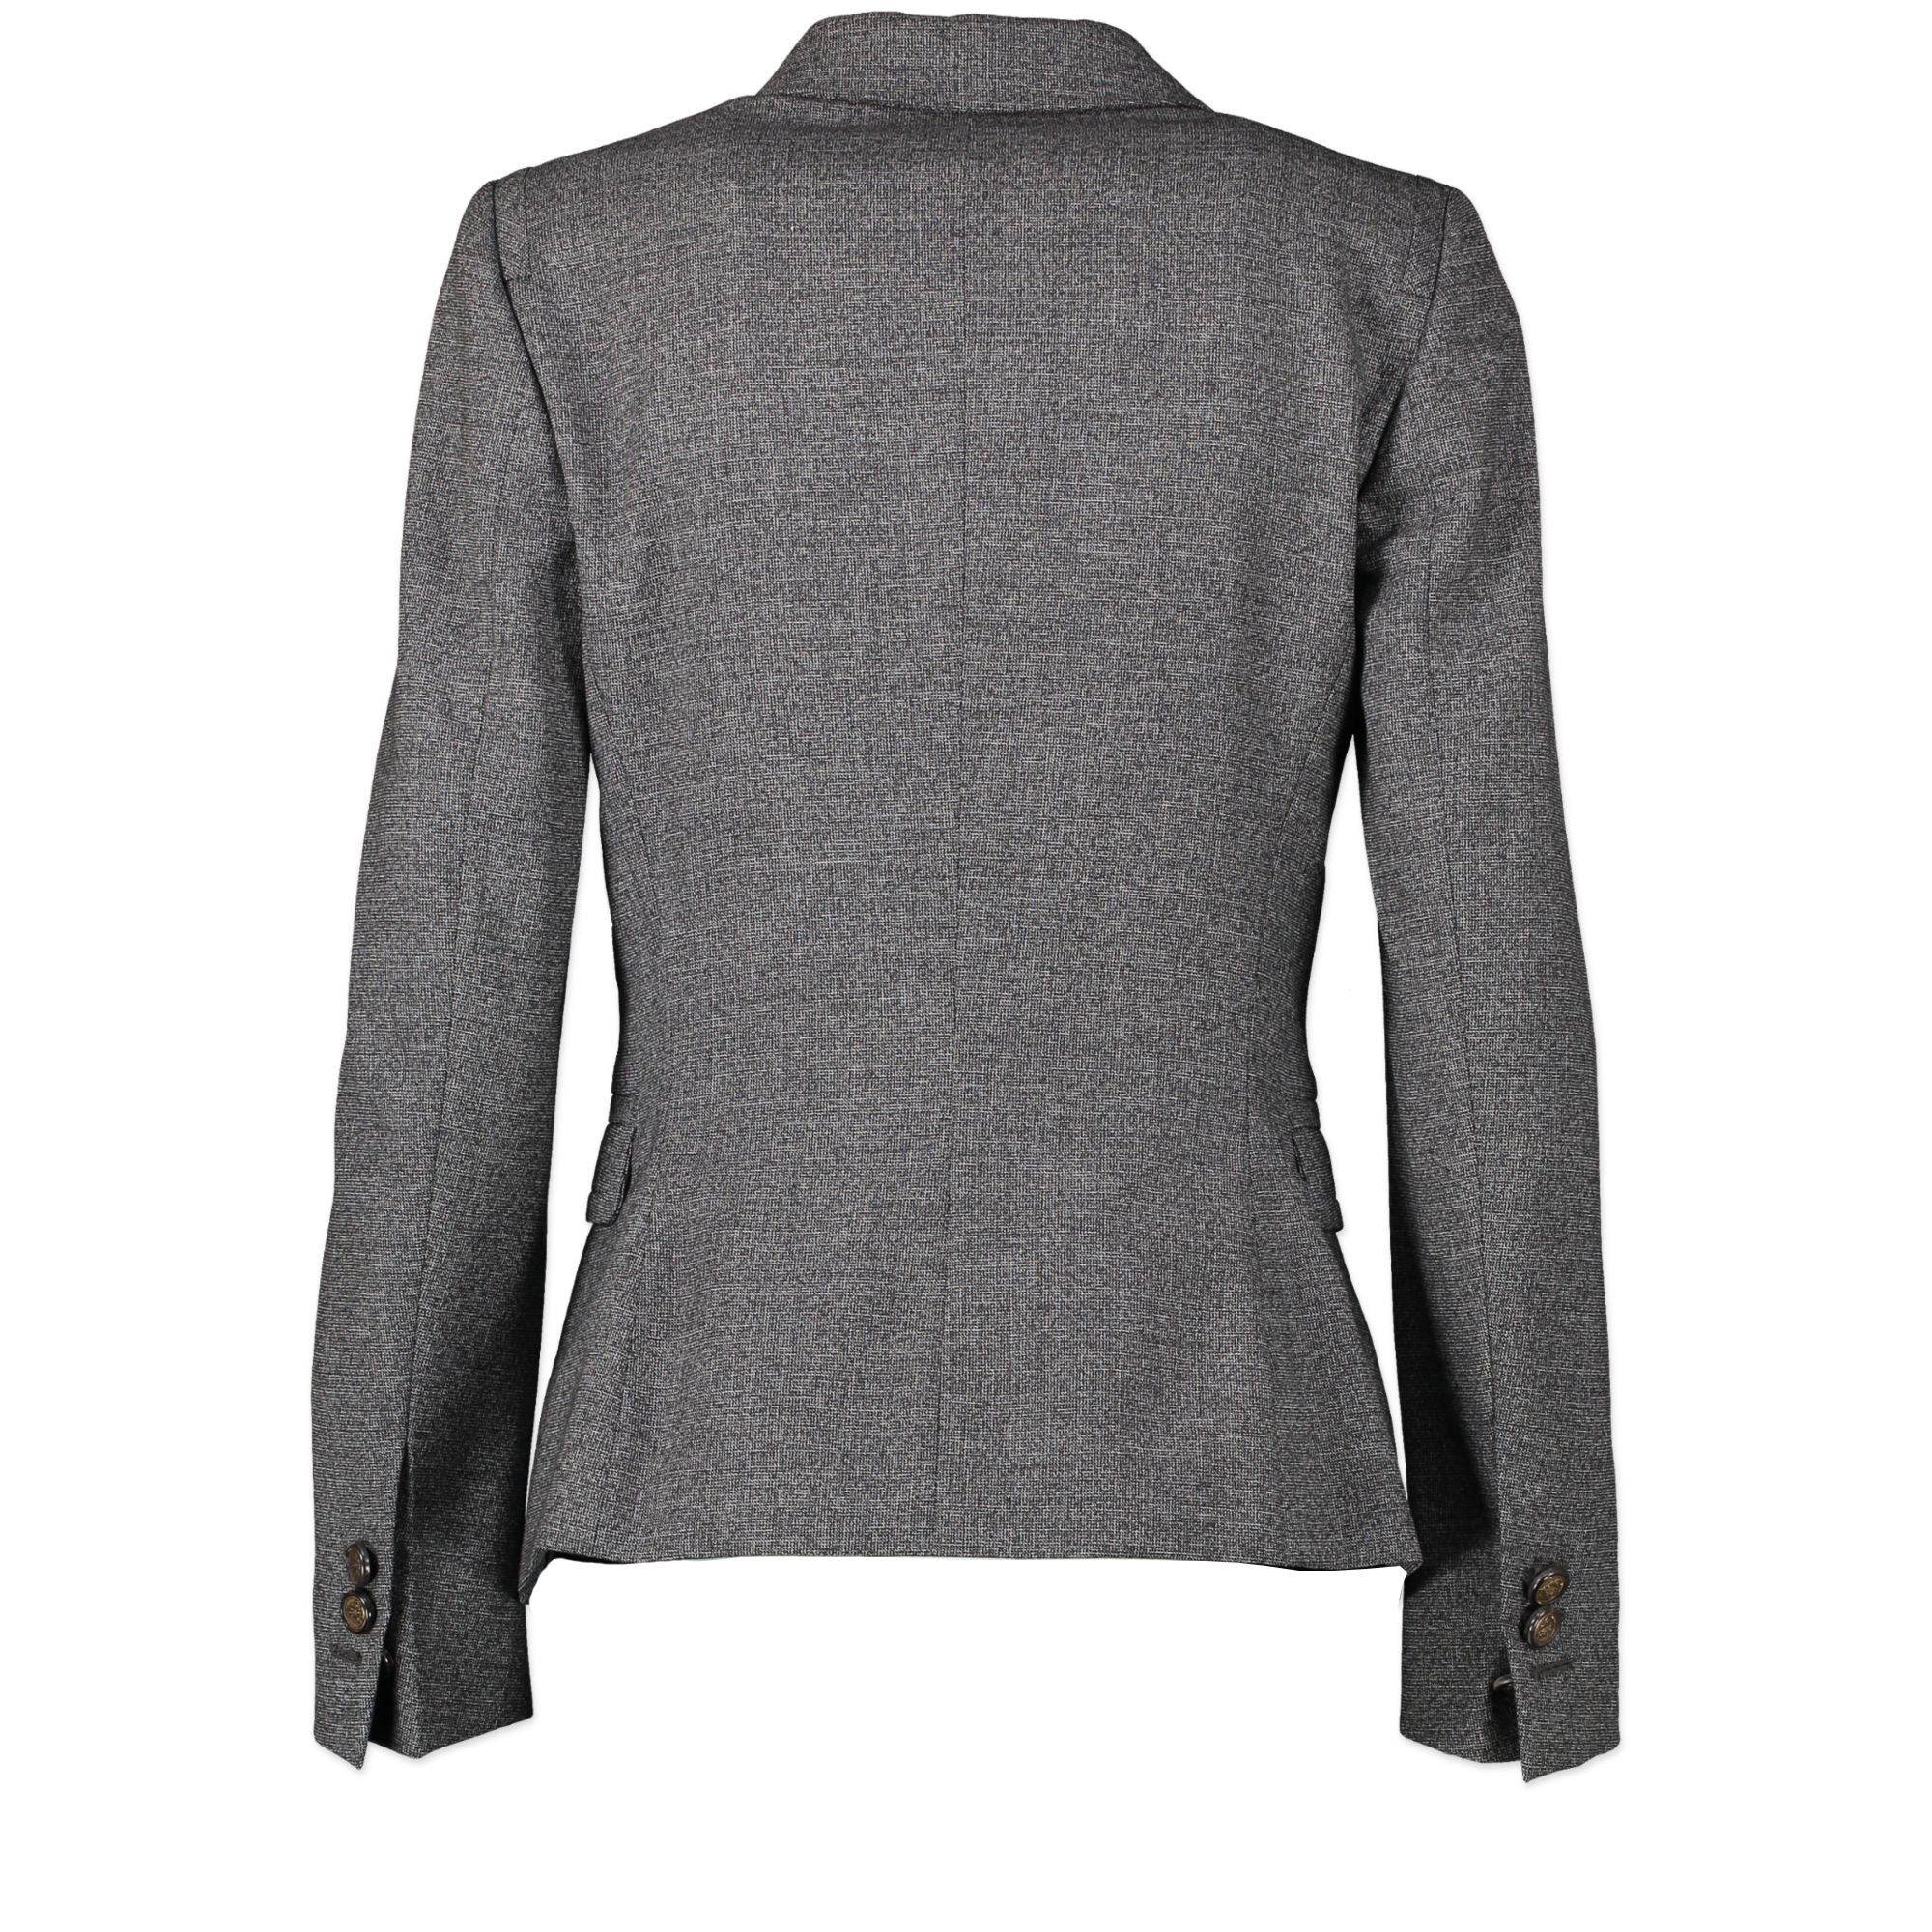 Gucci Wool Grey Blazer - Size IT38